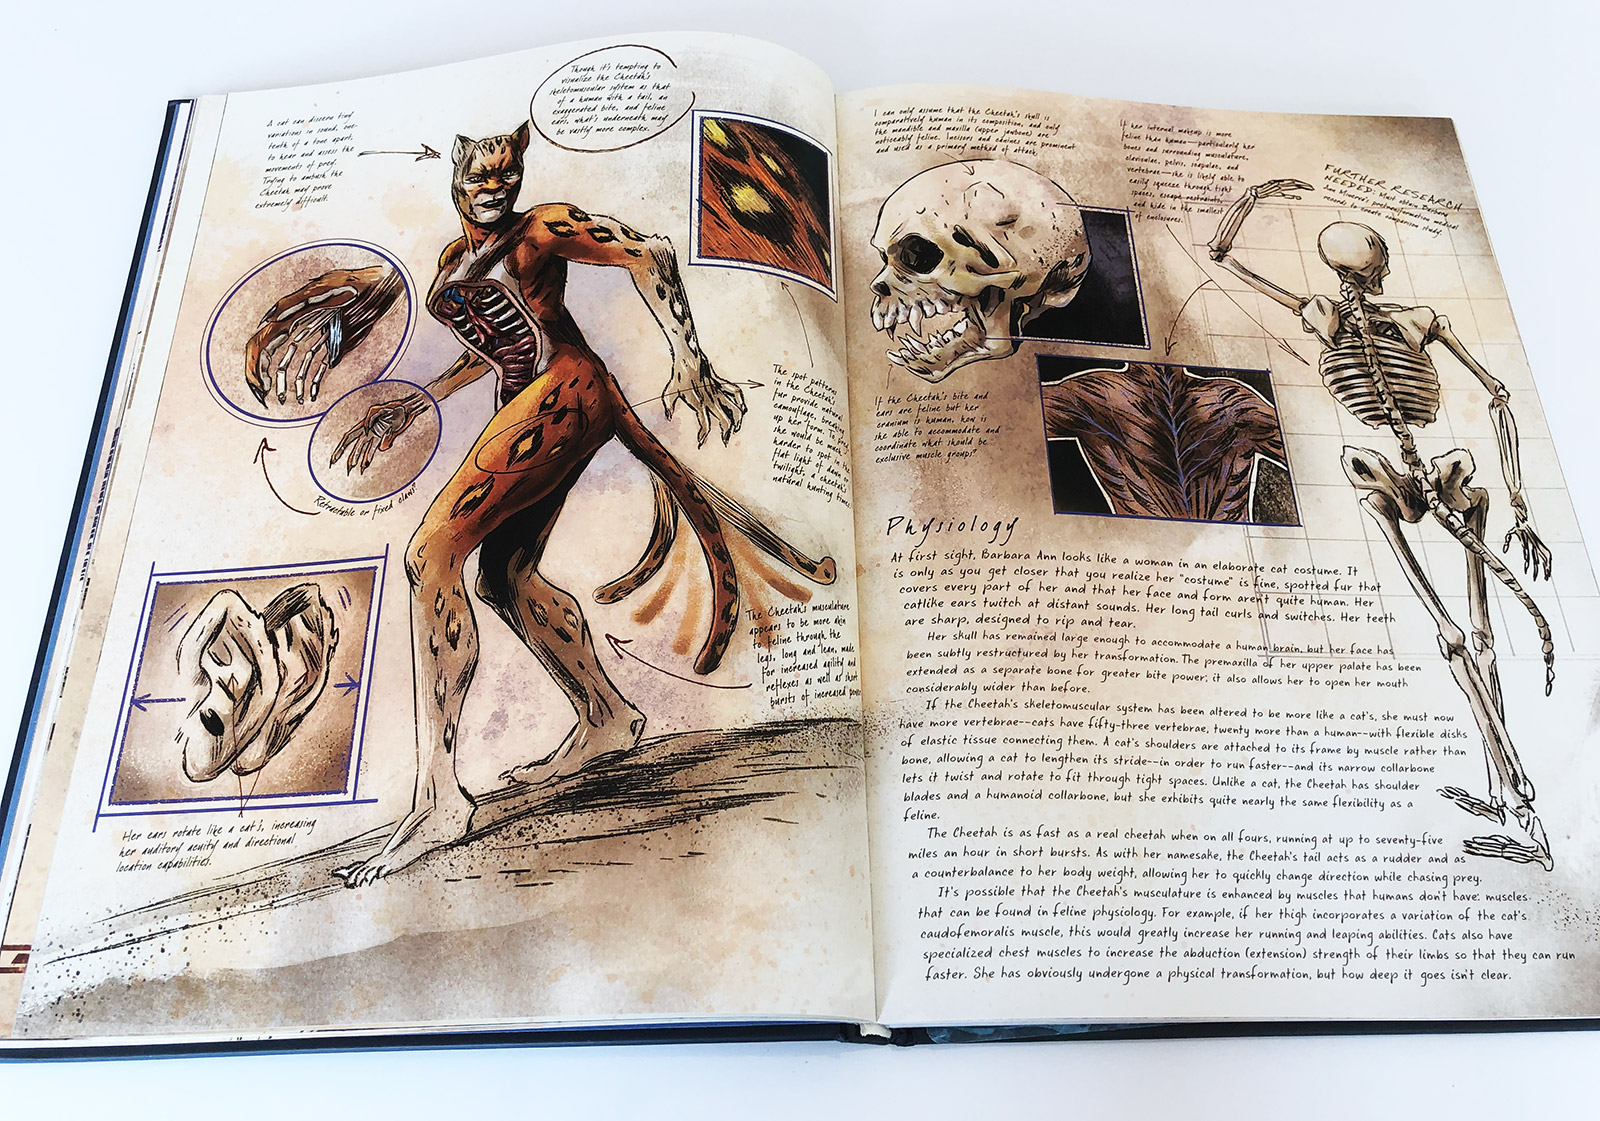 DC Comics: Anatomy of a Metahuman Book Review